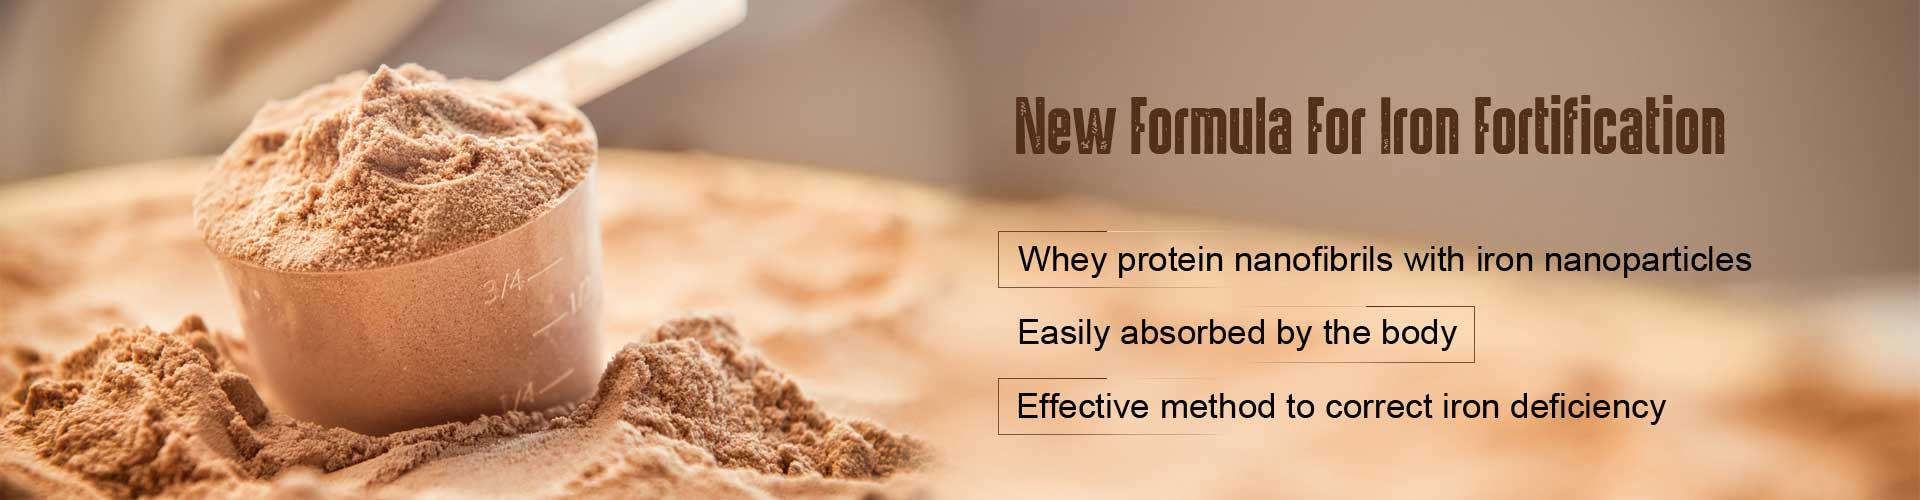 Iron-Coated Whey Protein, The New Formula For Iron Fortification